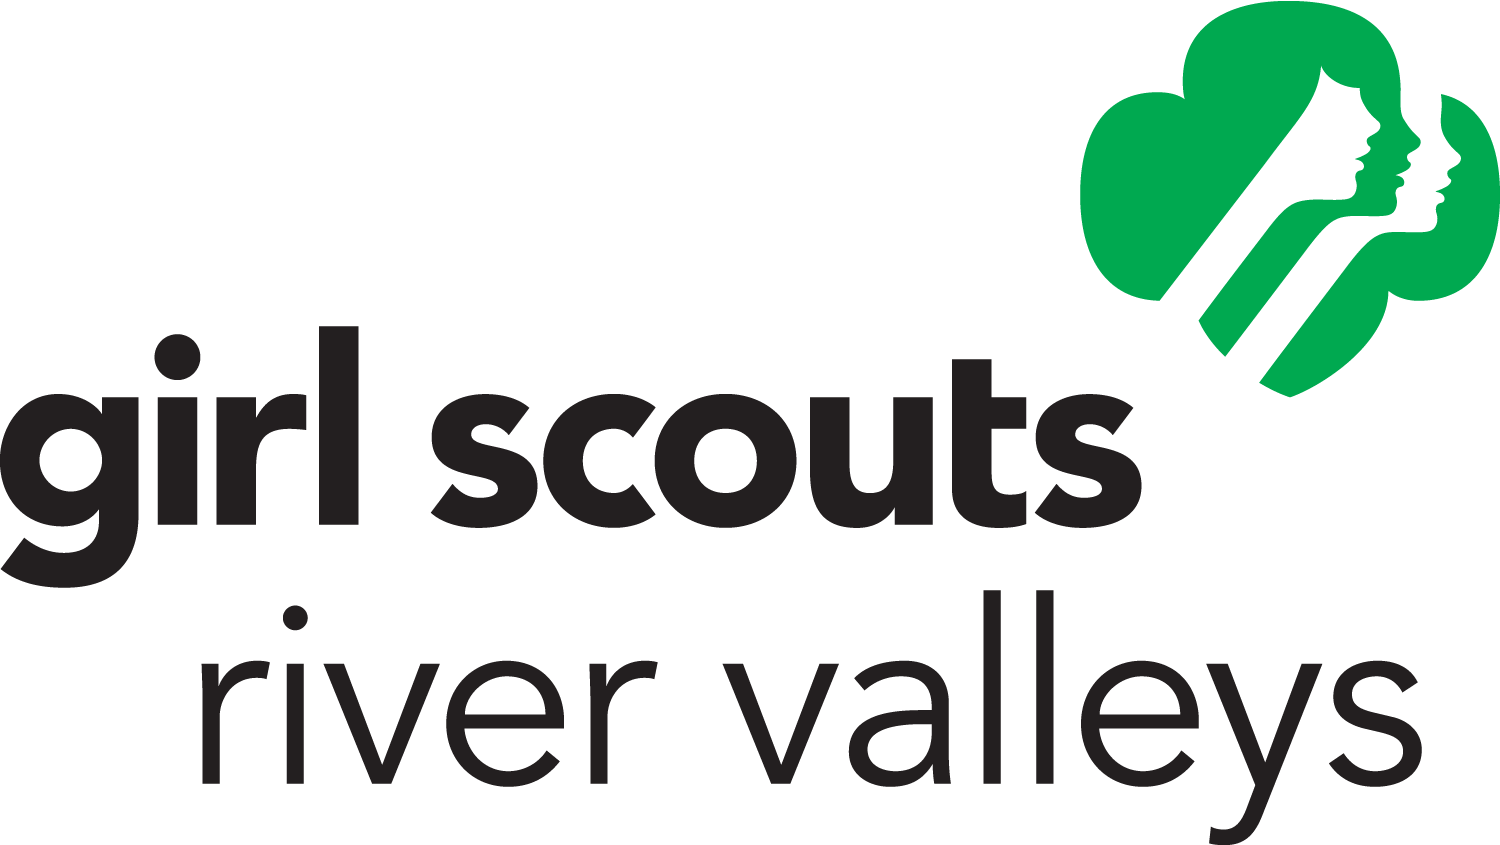 Girl Scouts River Valleys Logo